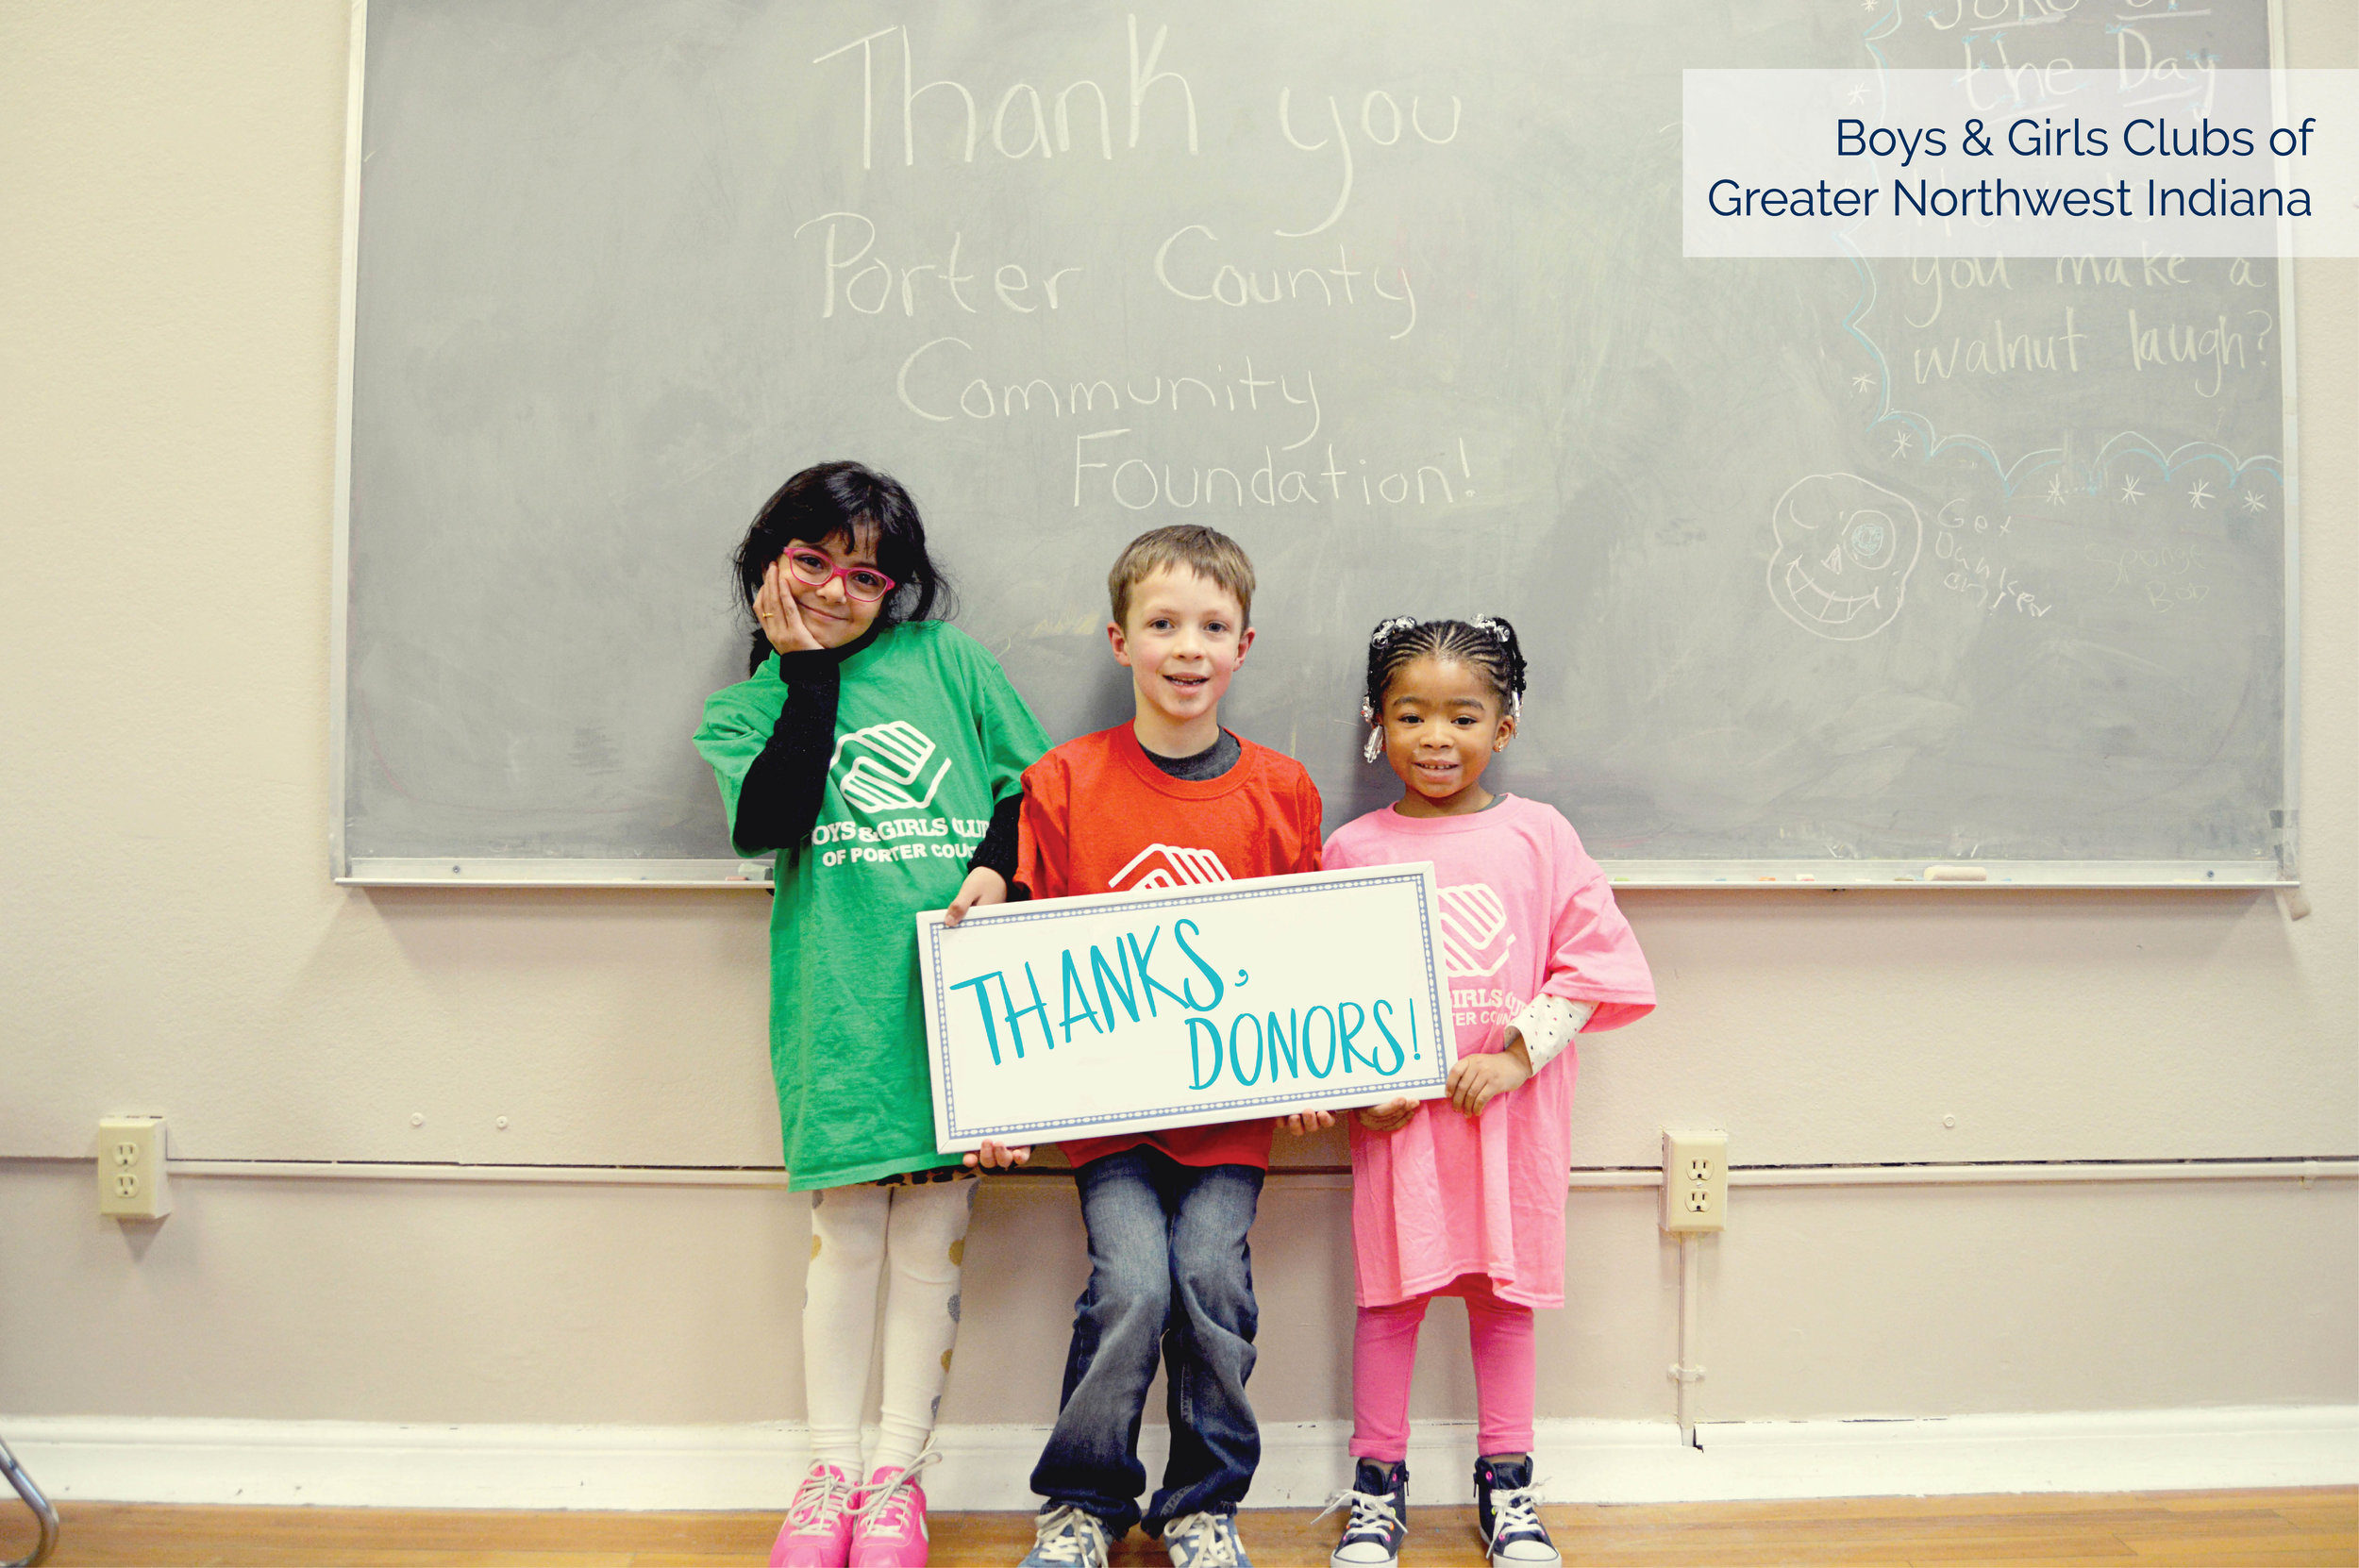 Boys & Girls Clubs of Greater Northwest Indiana Grant